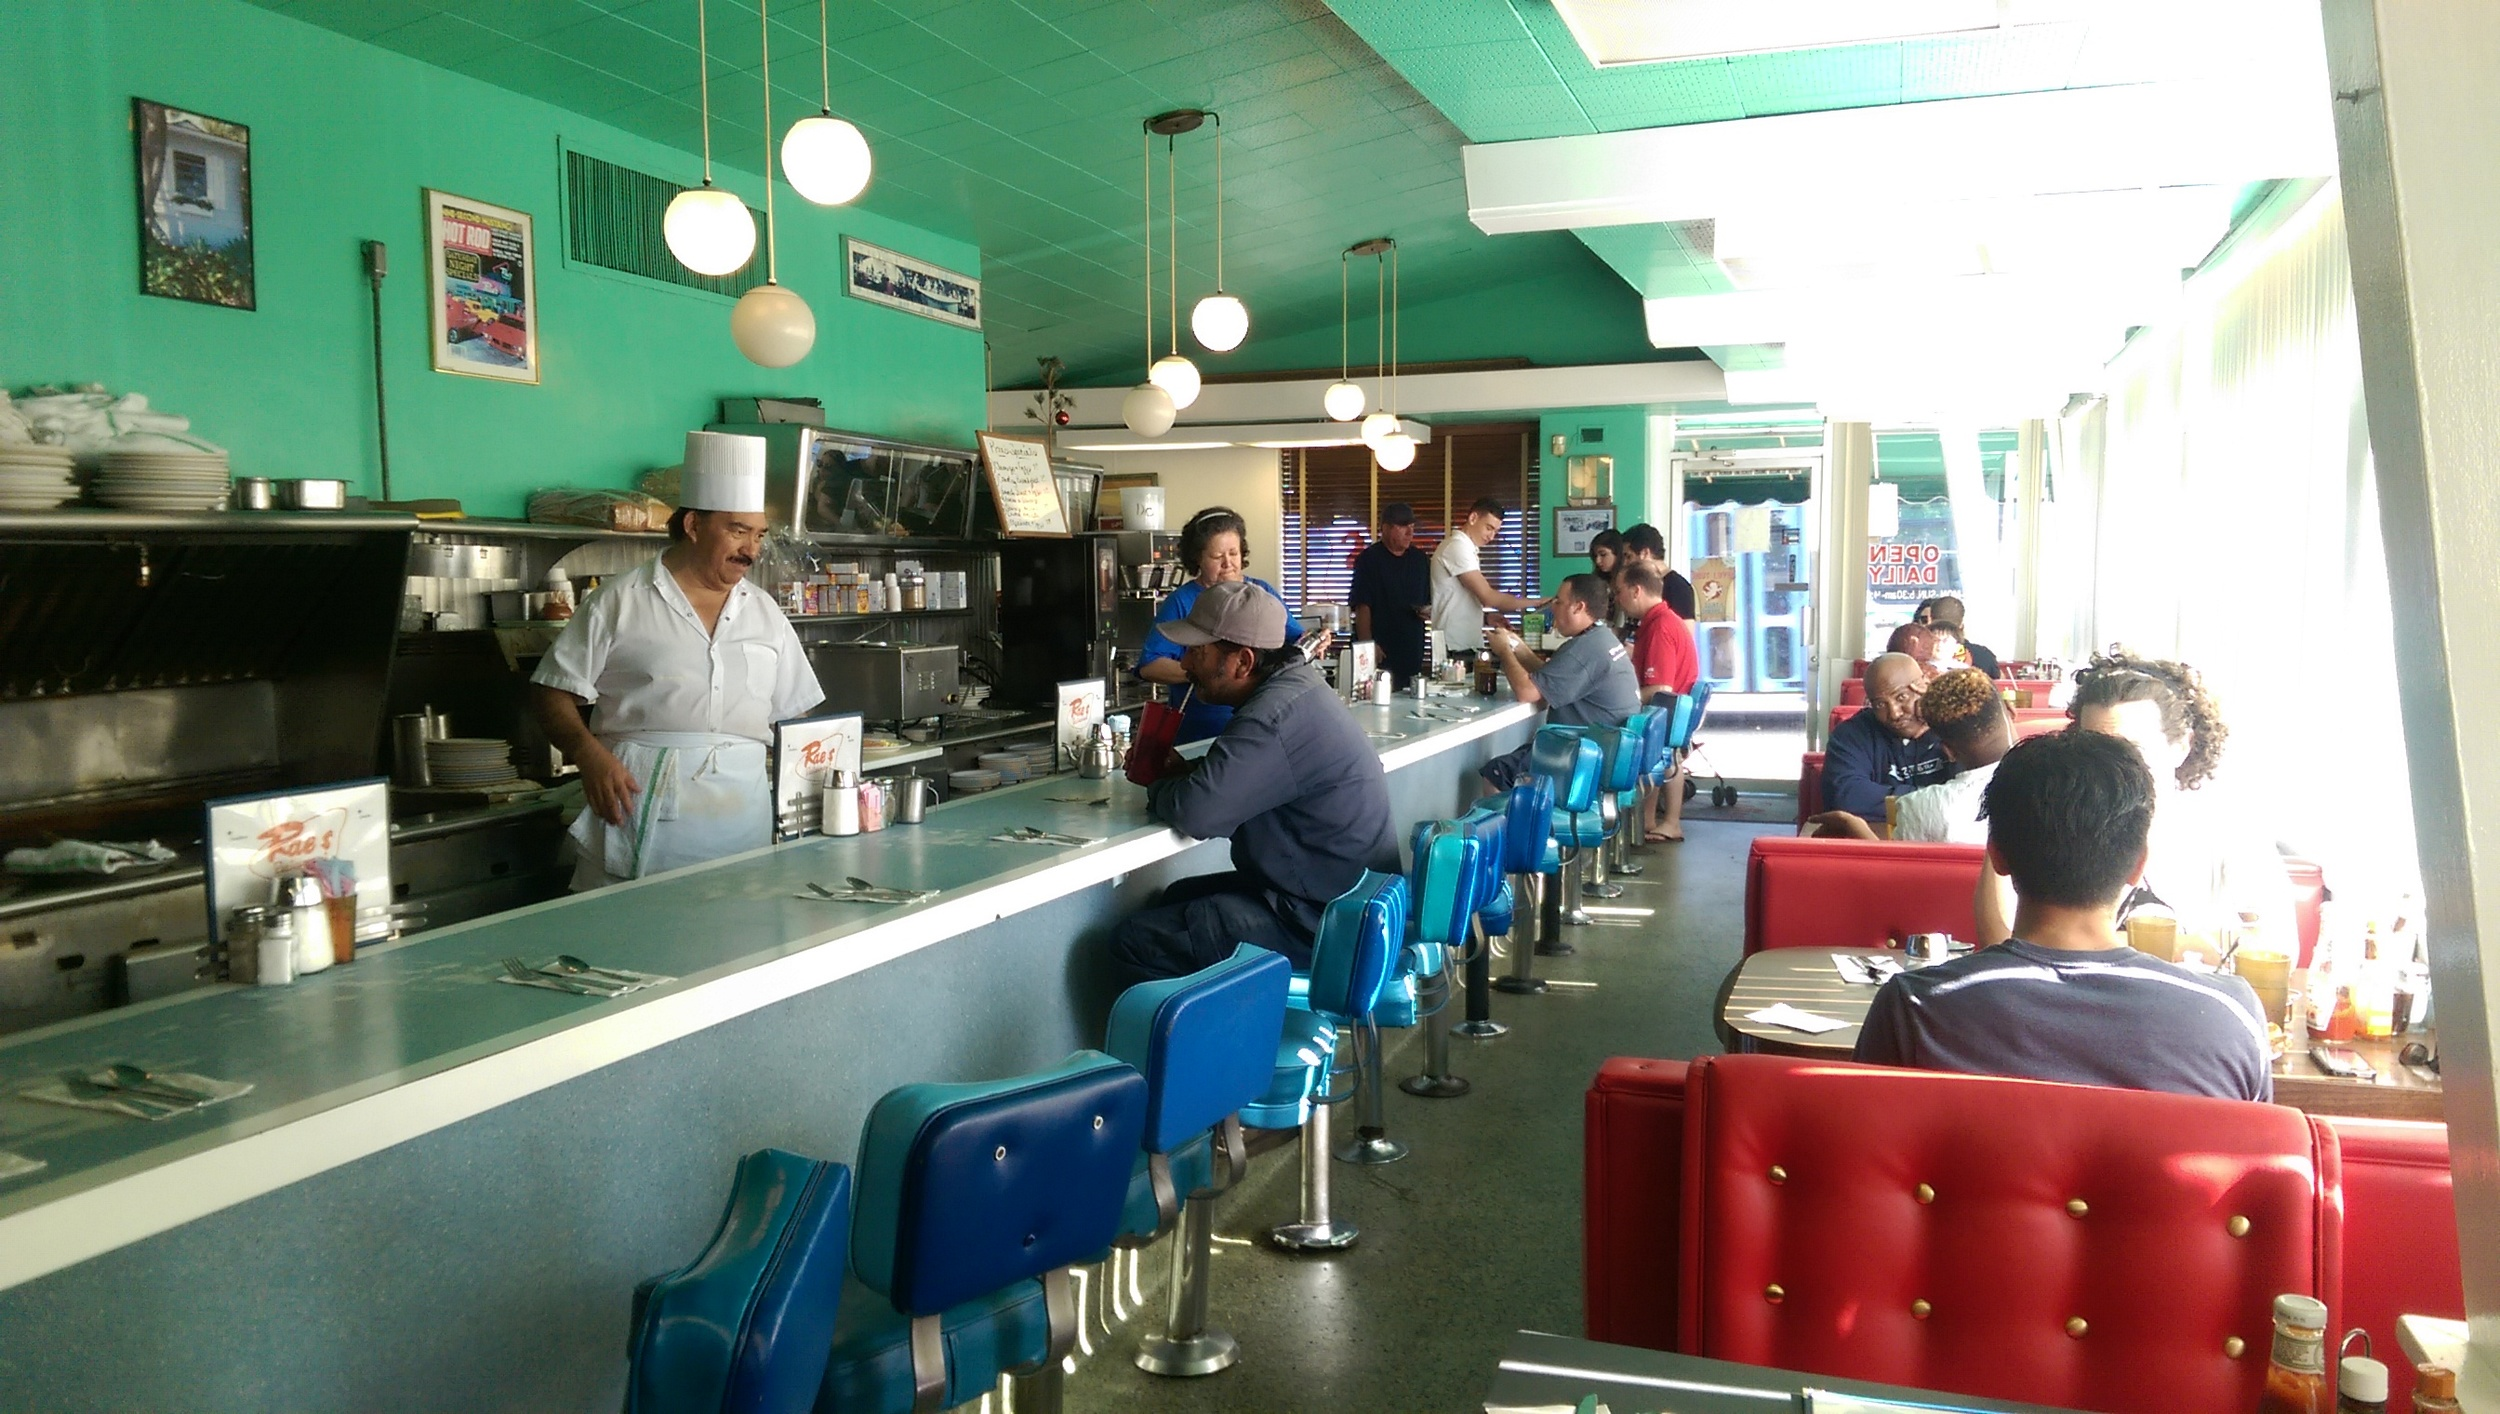 Rae's Restaurant on Pico Boulevard provides the classic diner experience